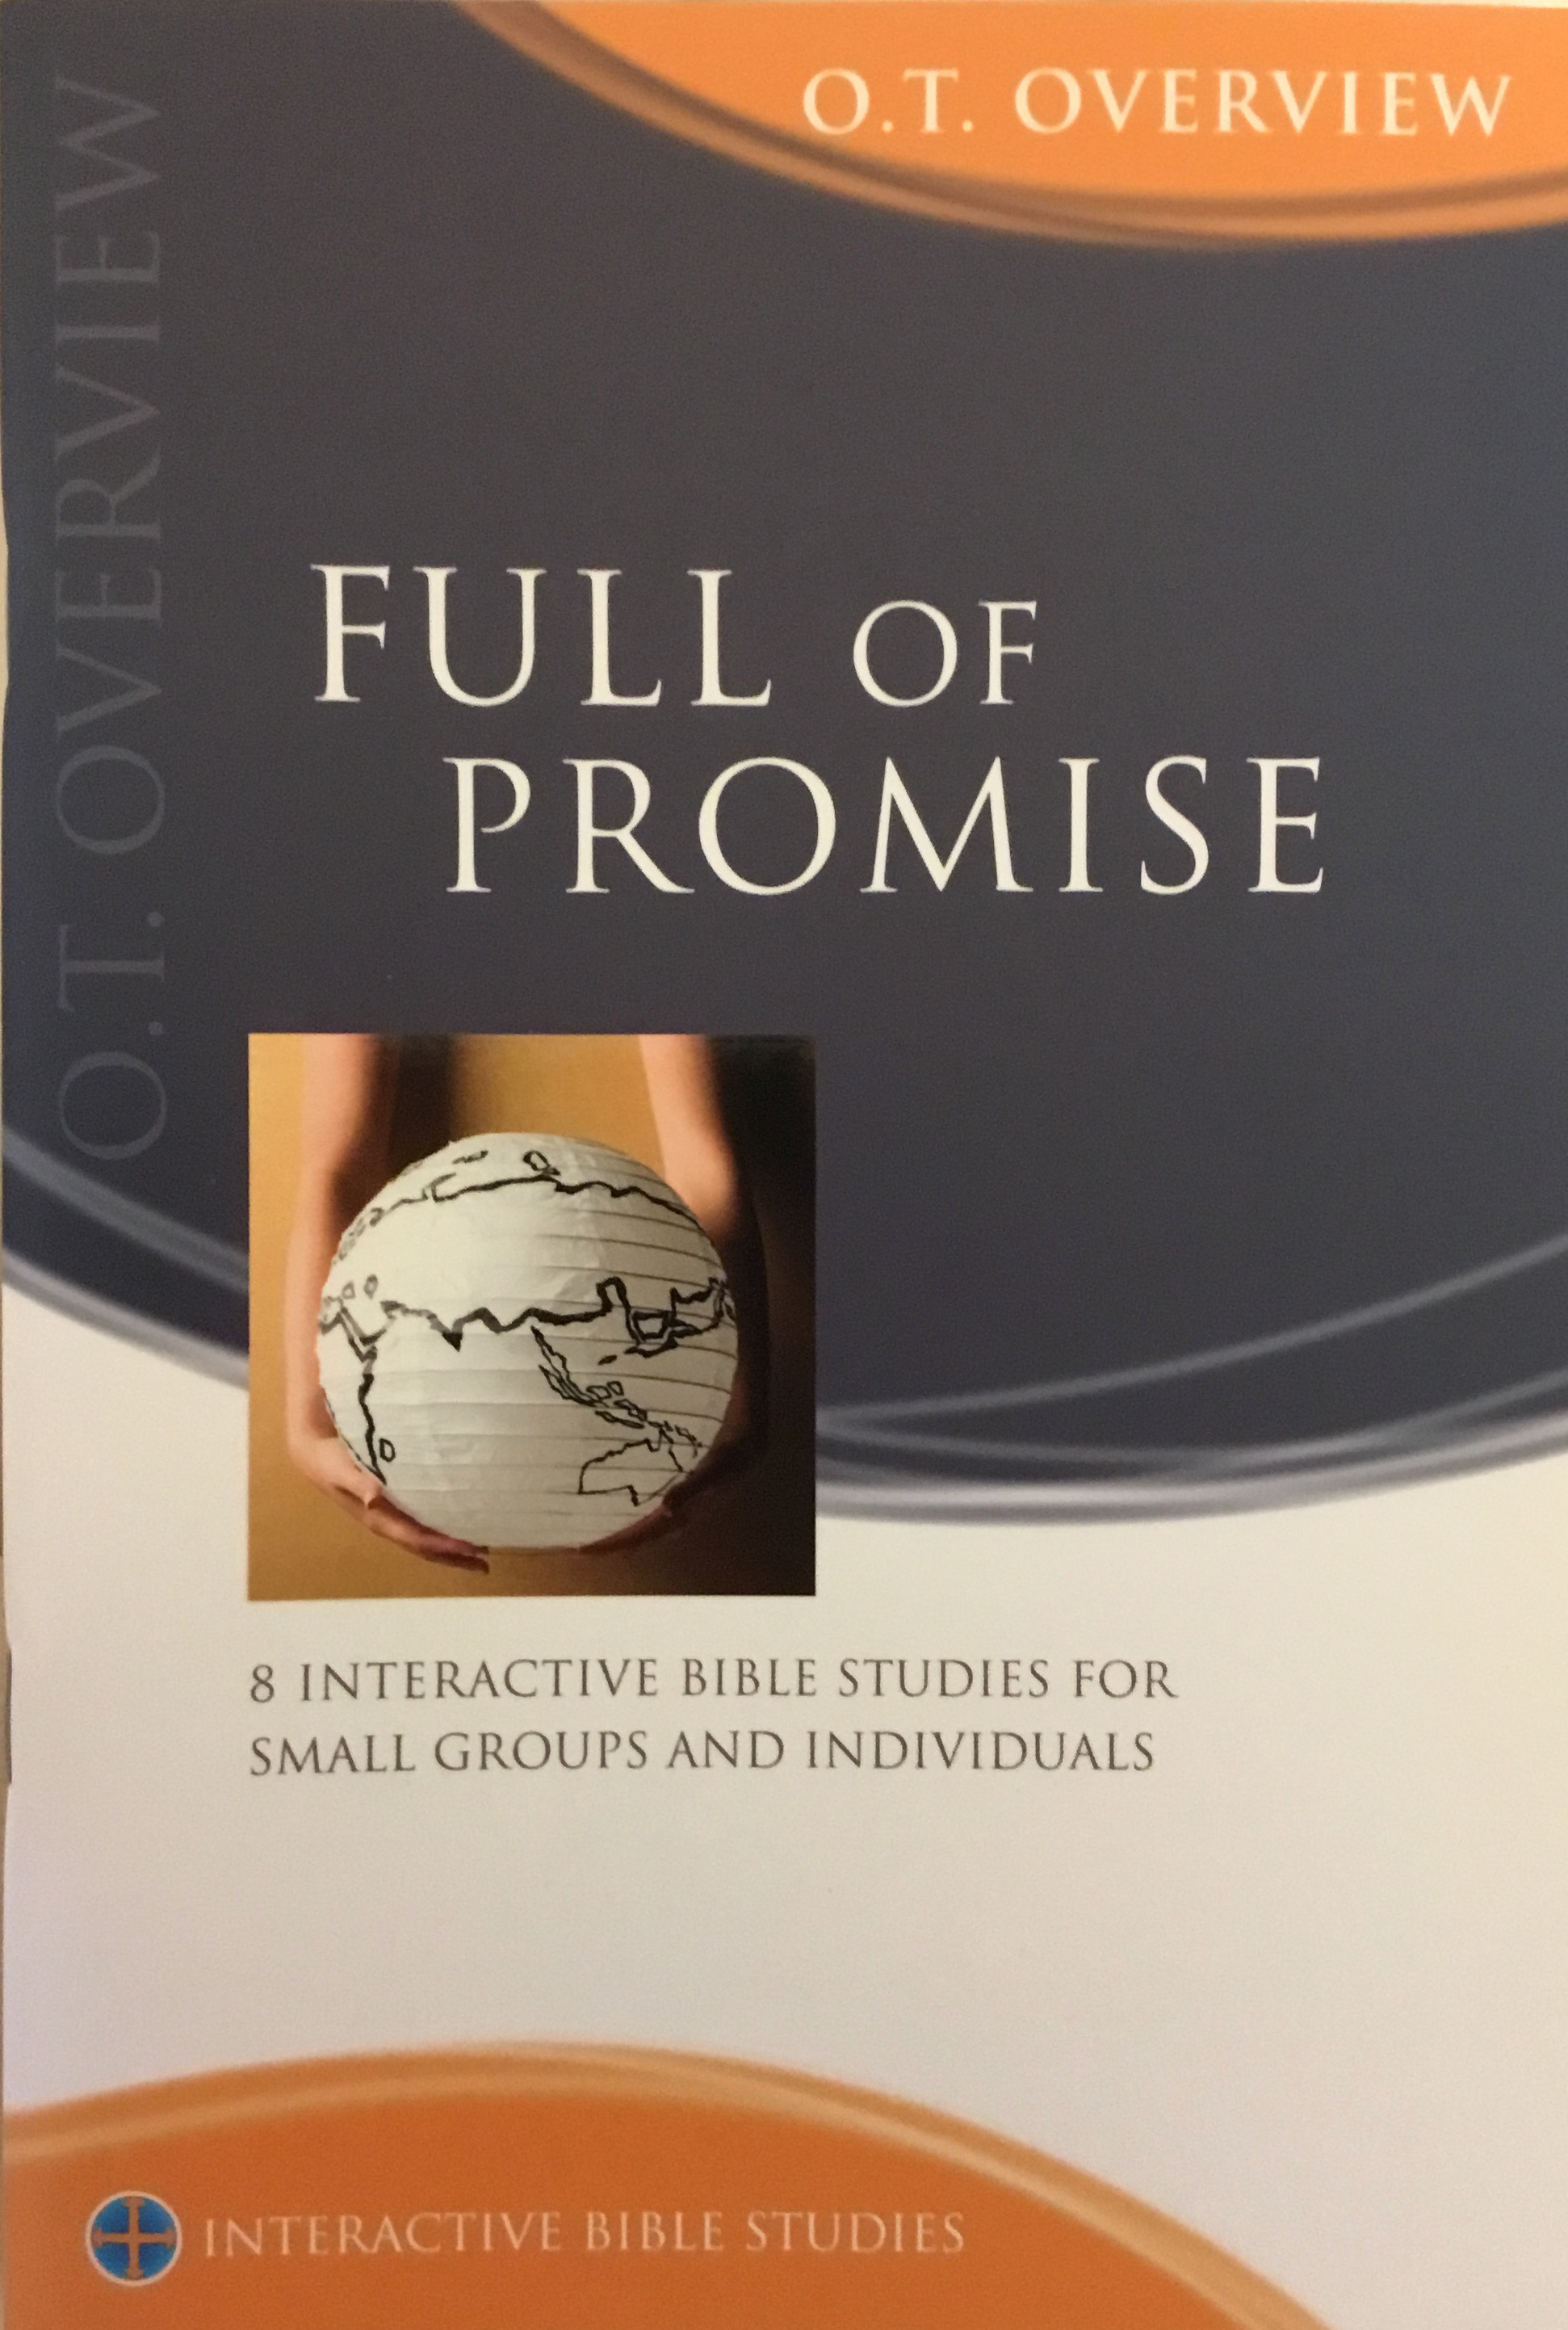 Full of promise: Old Testament overview